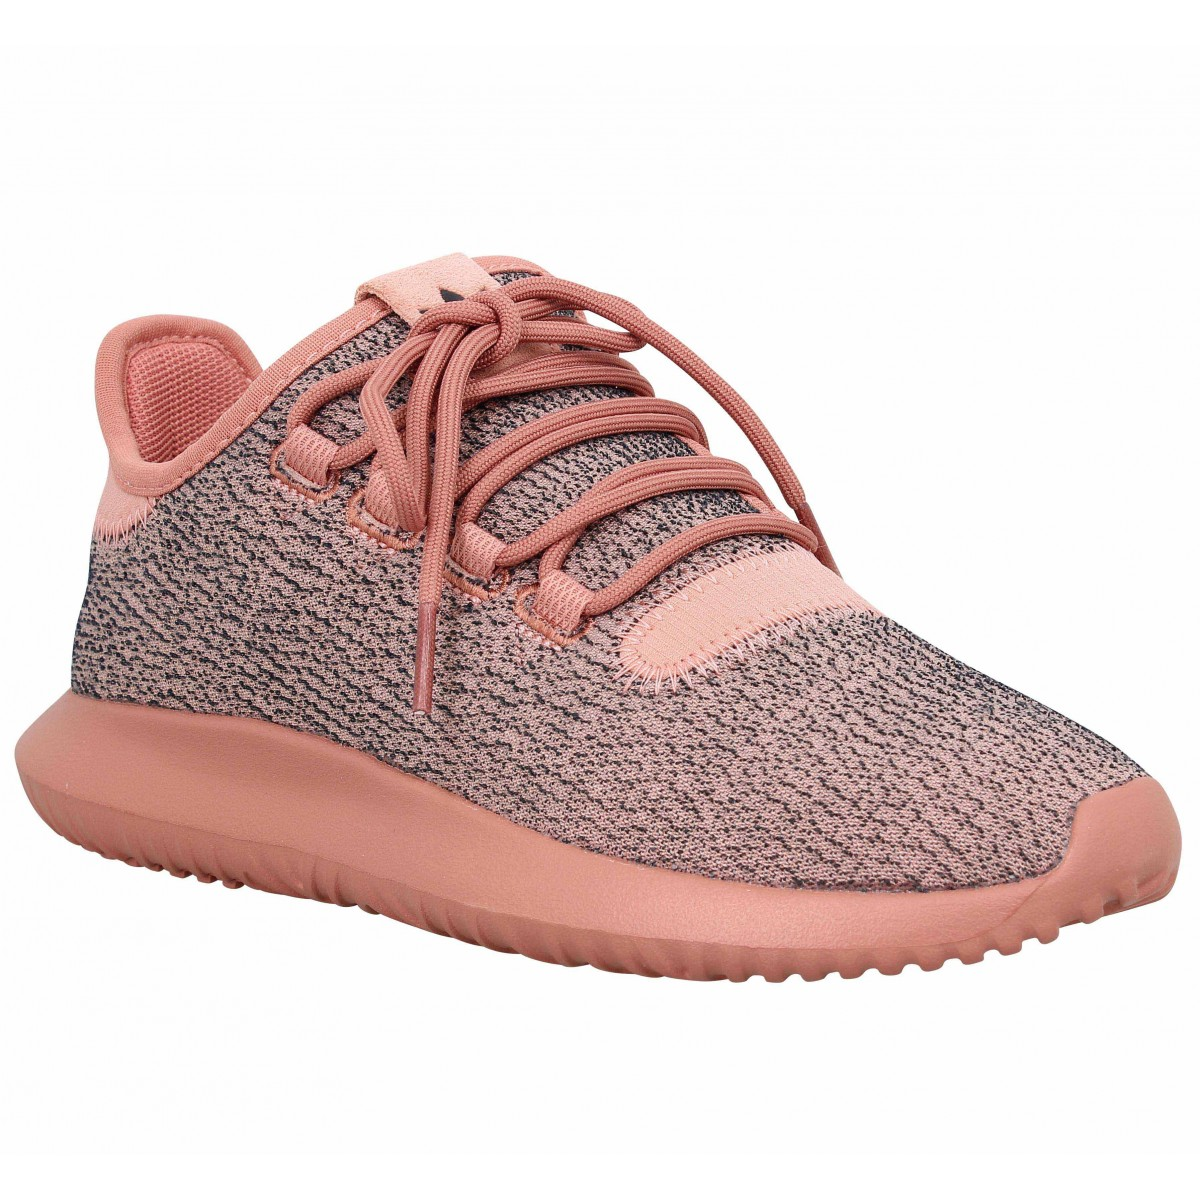 Adidas tubular shadow toile femme rose femme